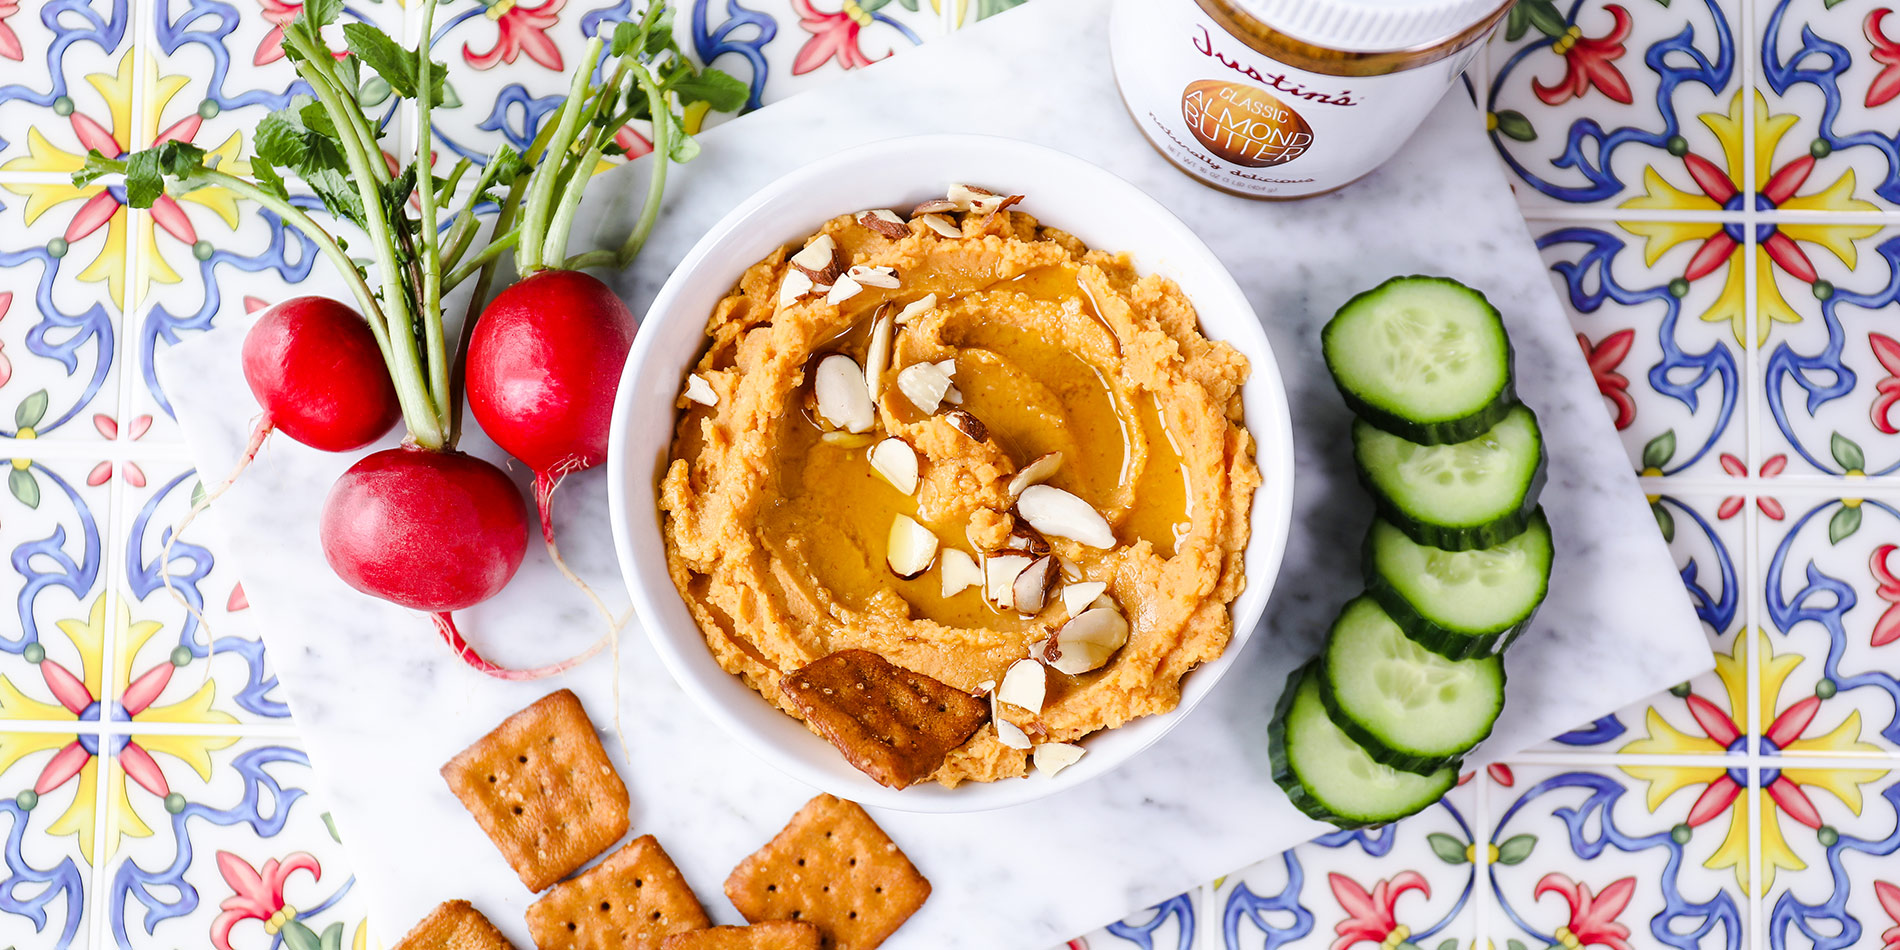 Sweet Potato Almond Hummus on a white bowl with cucumber slices, beets, crackers on a floral patterned tile background